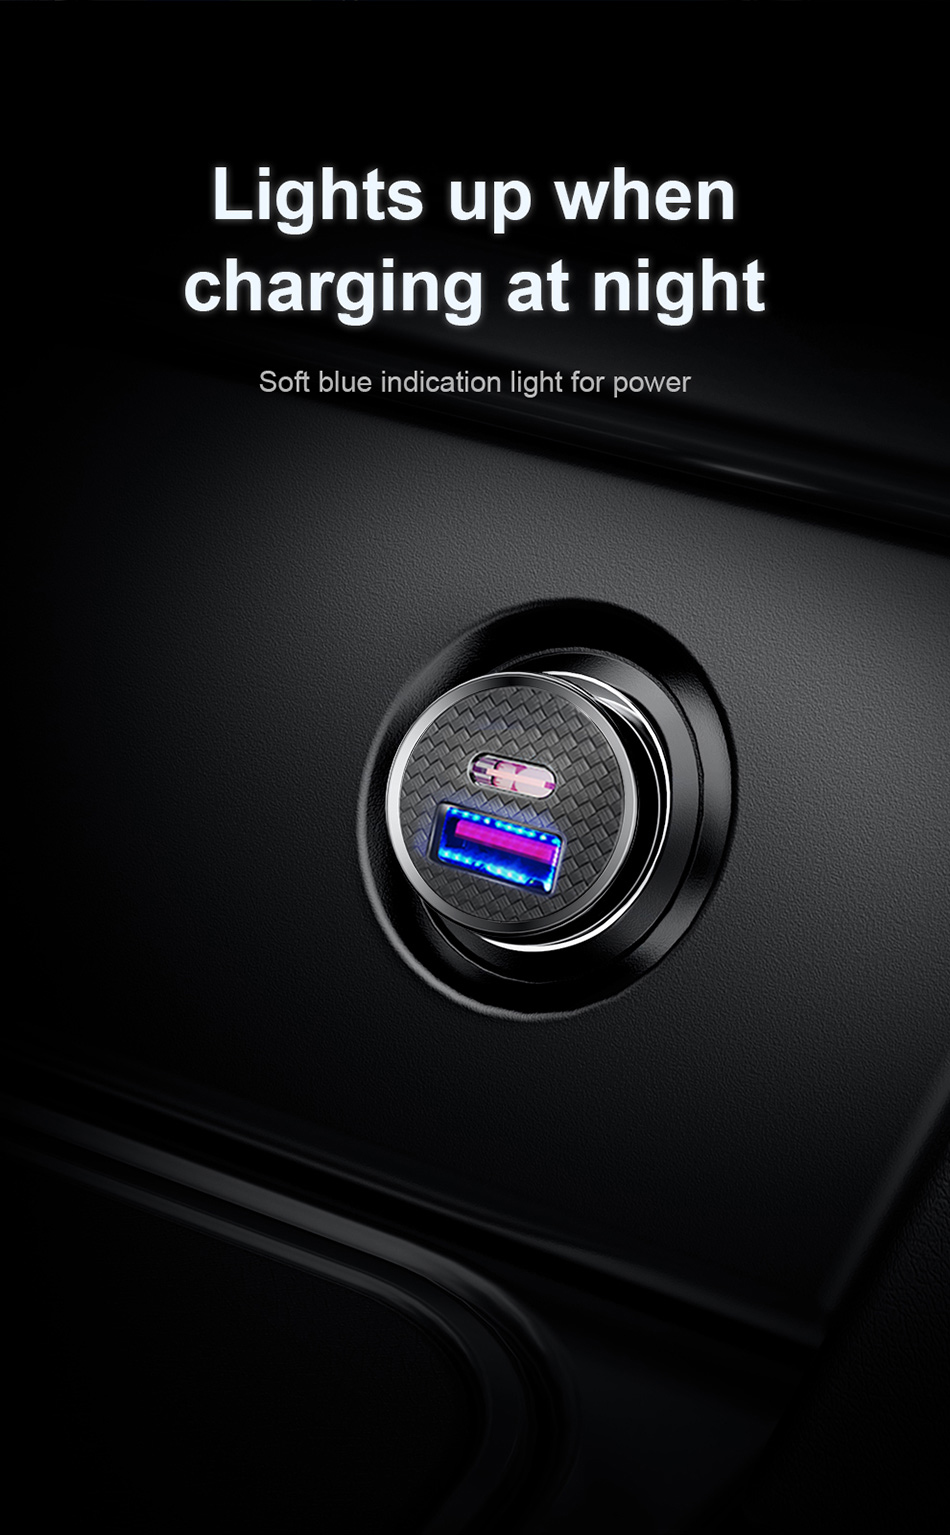 USB Car Charger 4.0 3.0 with charging light